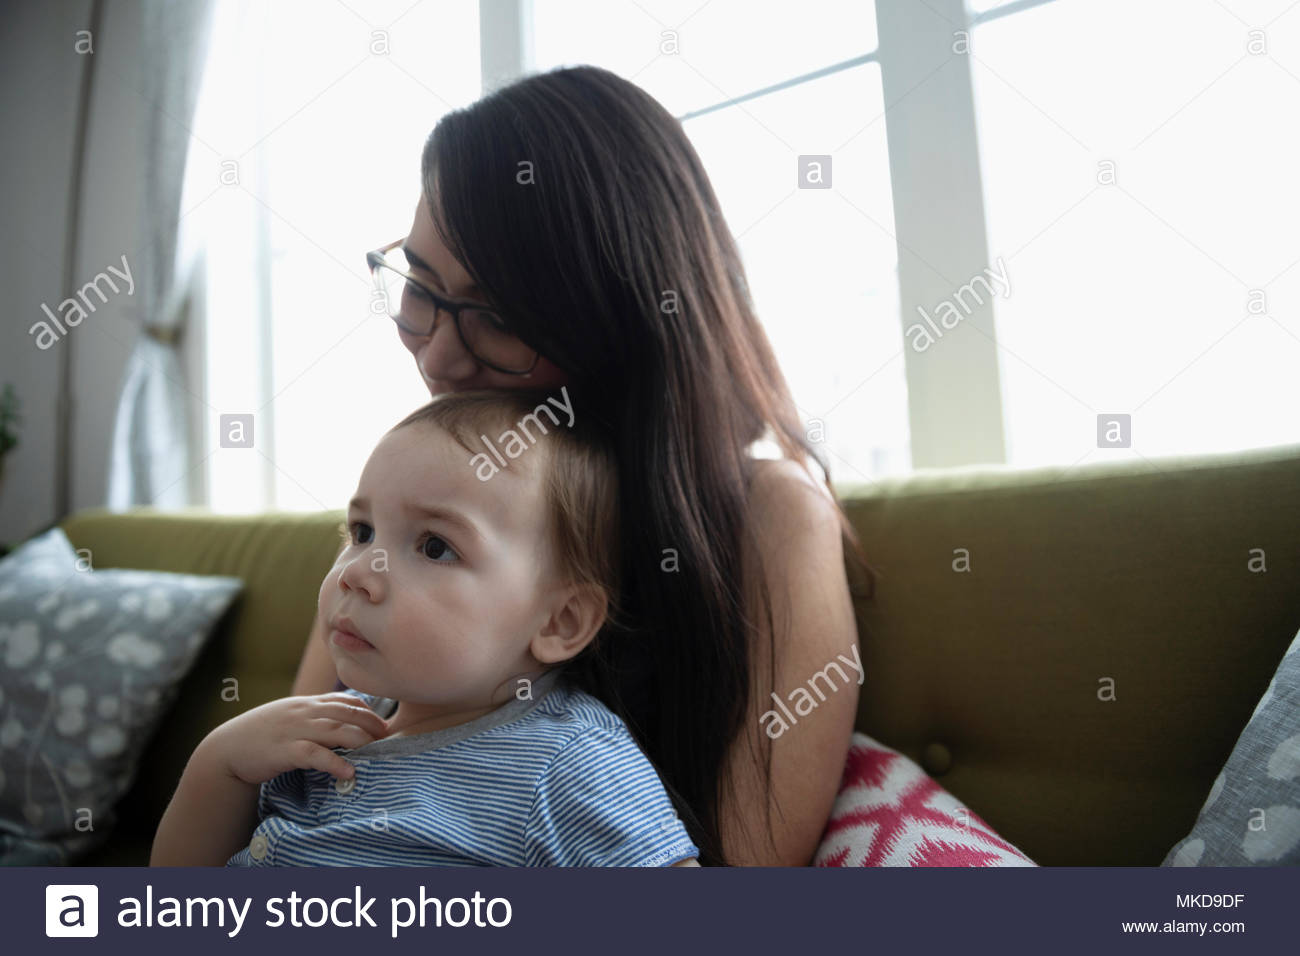 Affectueux, tendre mother holding baby son sur canapé Photo Stock